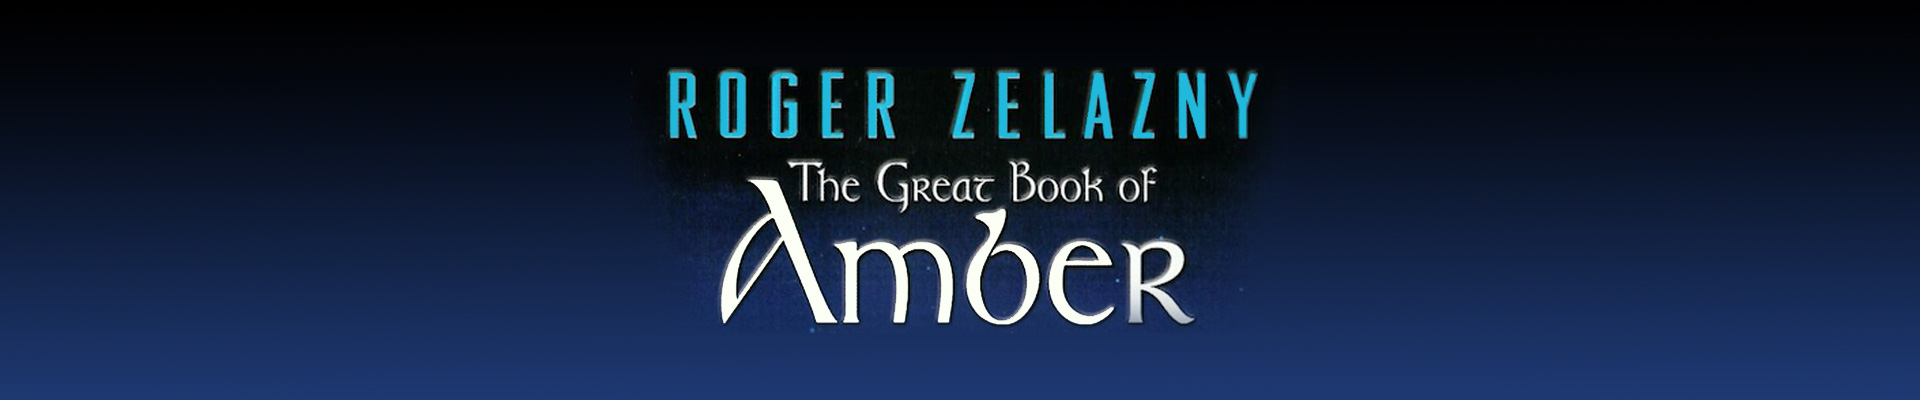 Returning to The Chronicles of Amber